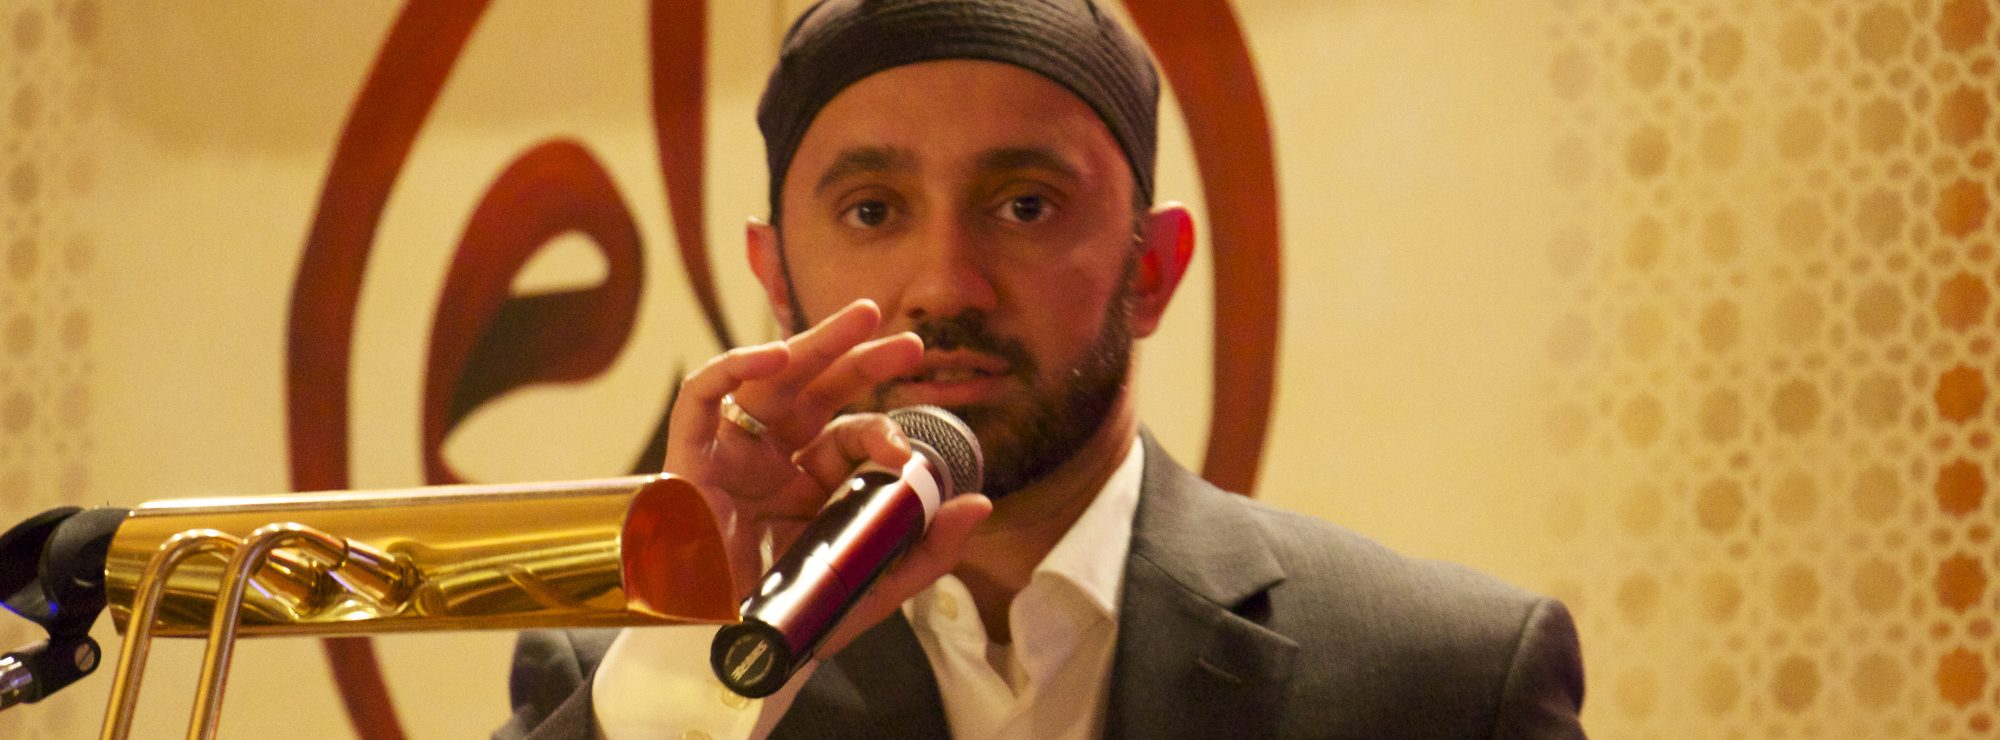 Imam Khalid Latif, Chaplain at NYU, delivers the keynote address at our 12th Anniversary Benefit Dinner held on May 14, 2016